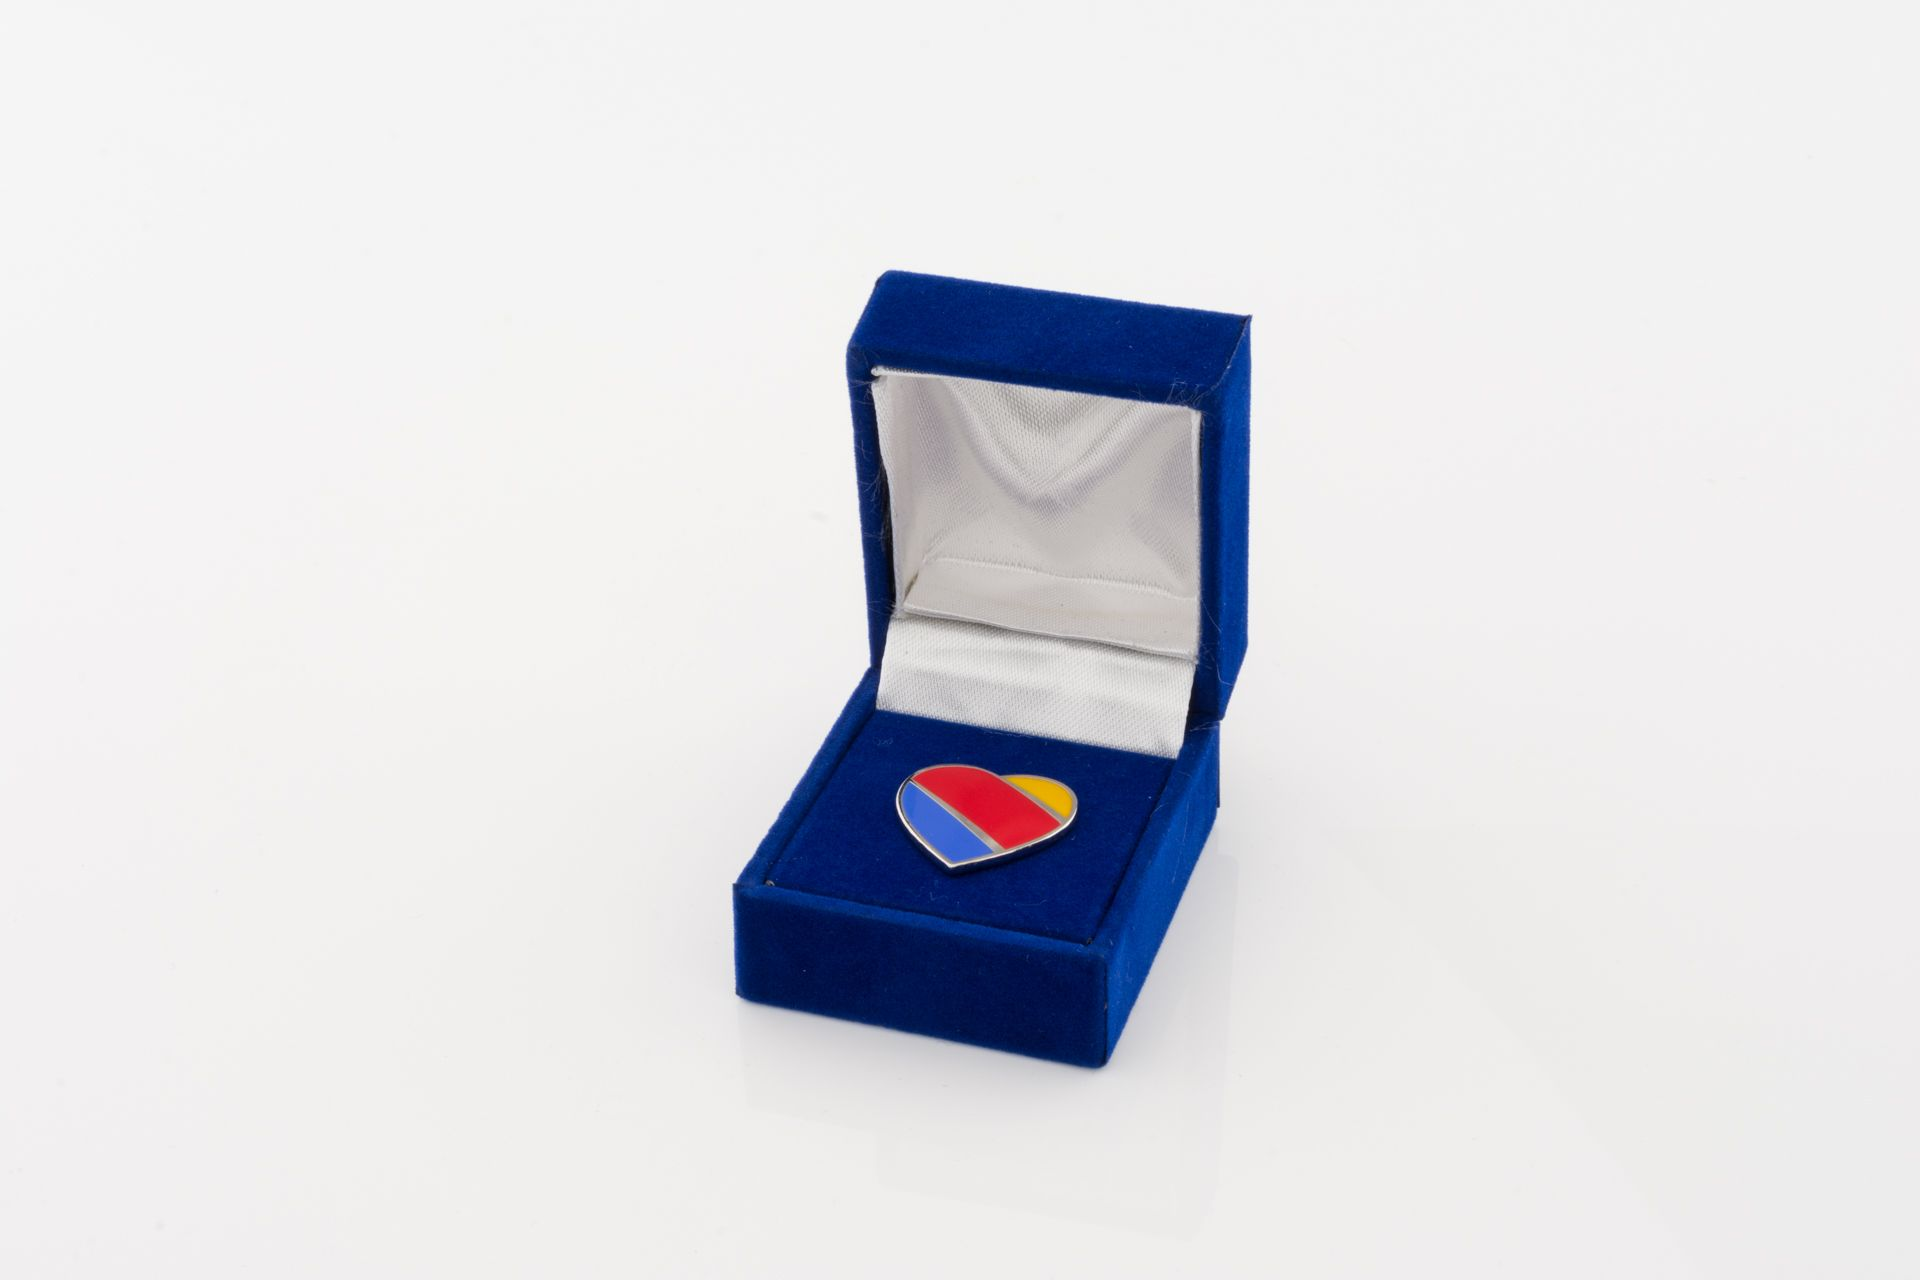 Southwest Airlines Heart Logo Pin in beautiful presentation box ...